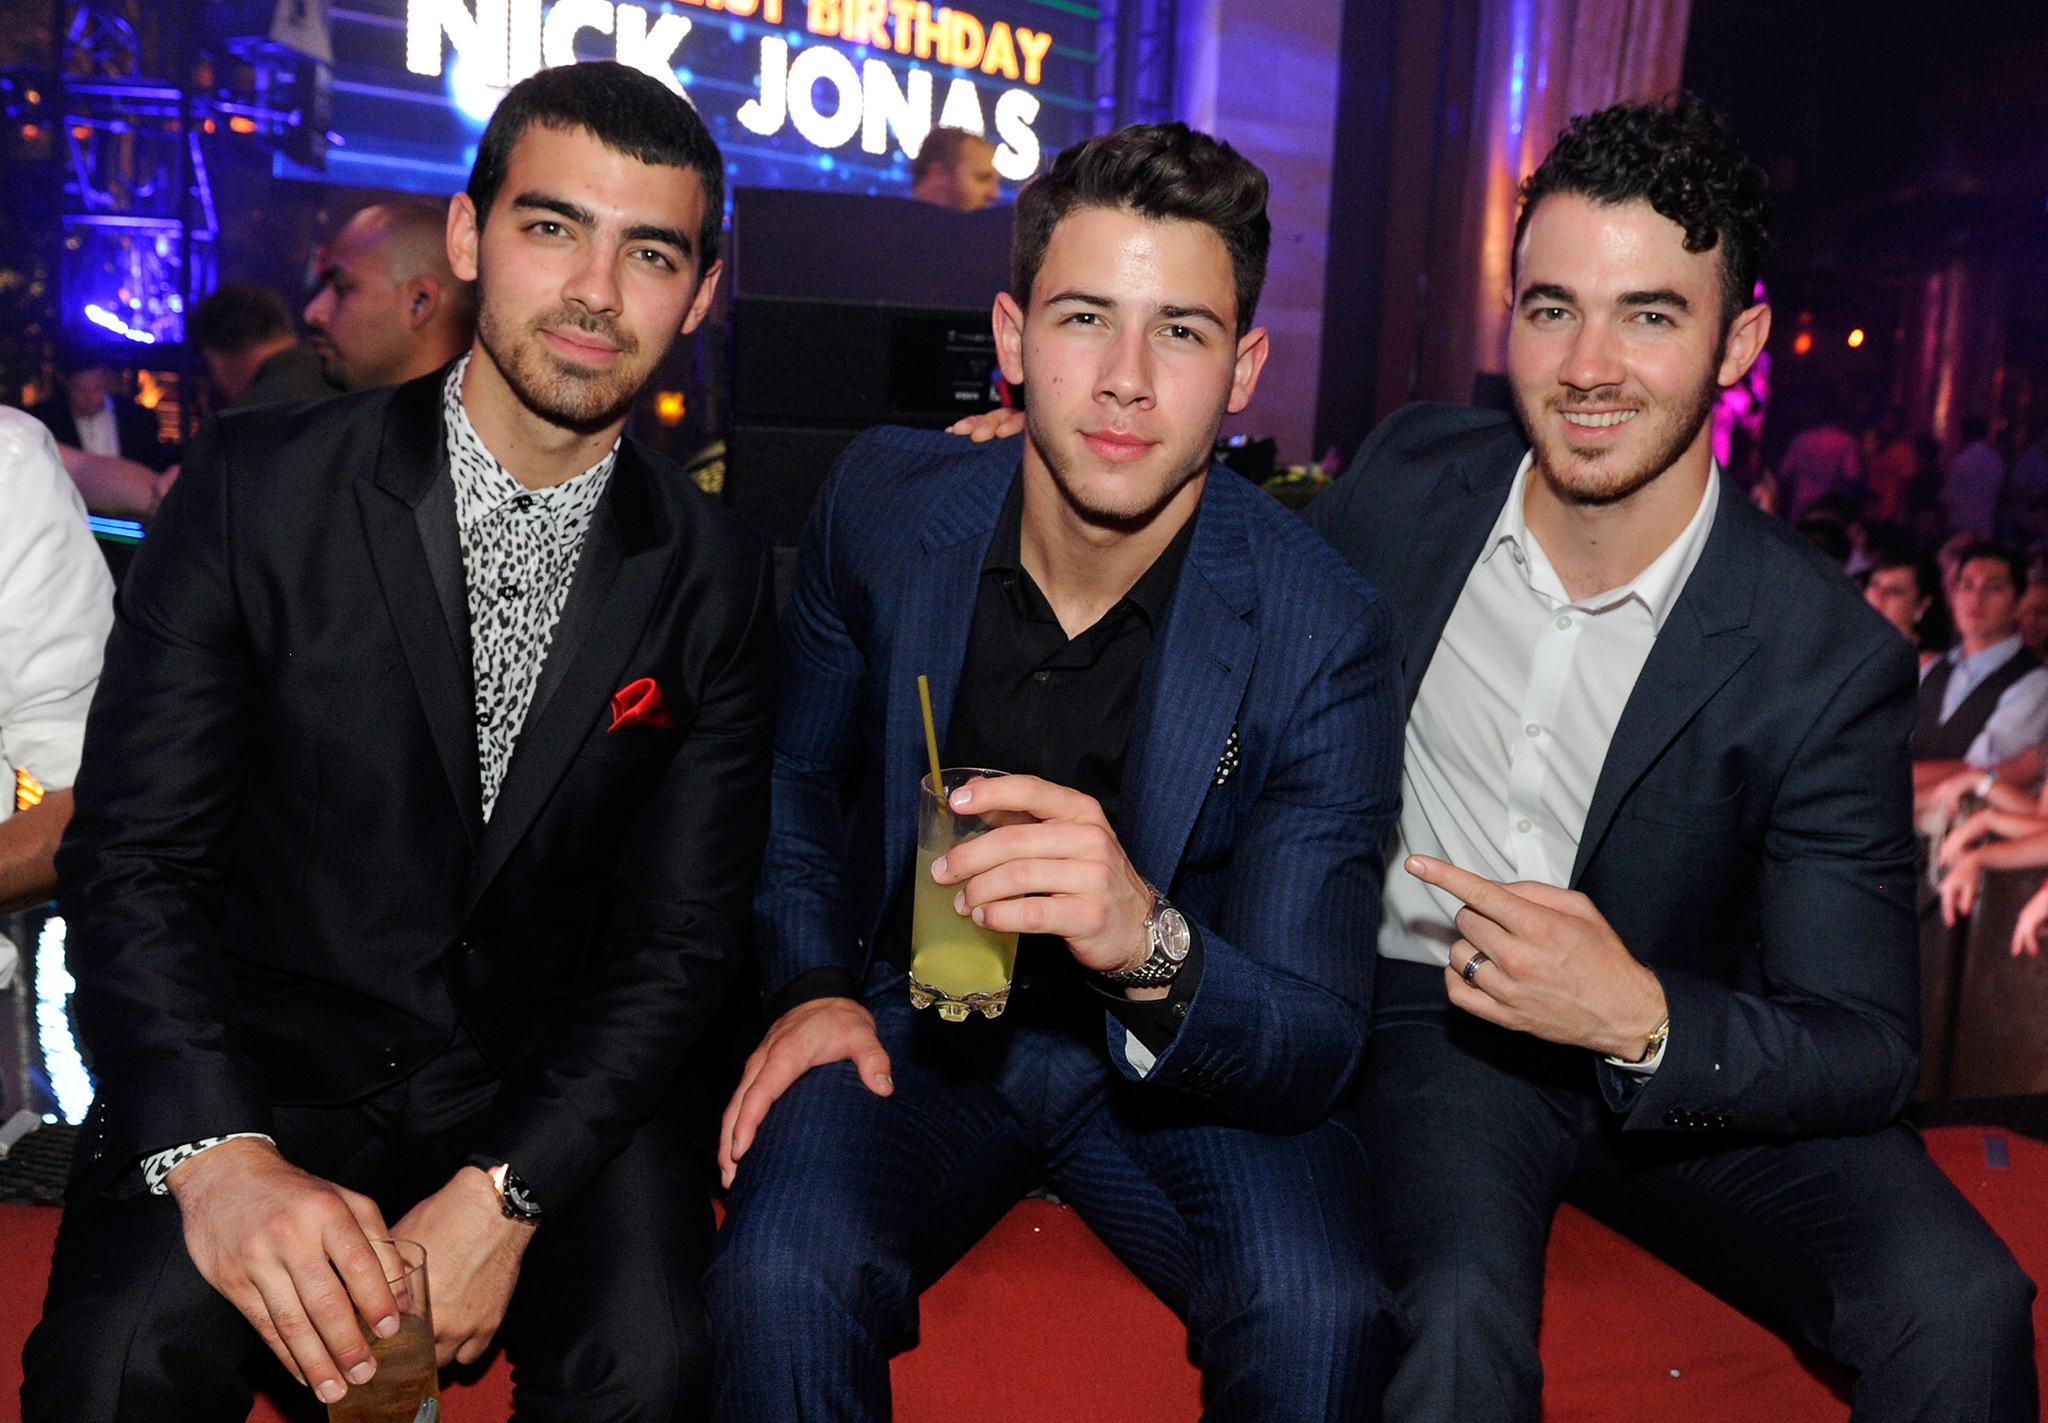 The Jonas Brothers celebrating Nick's birthday in September. (Getty Images)